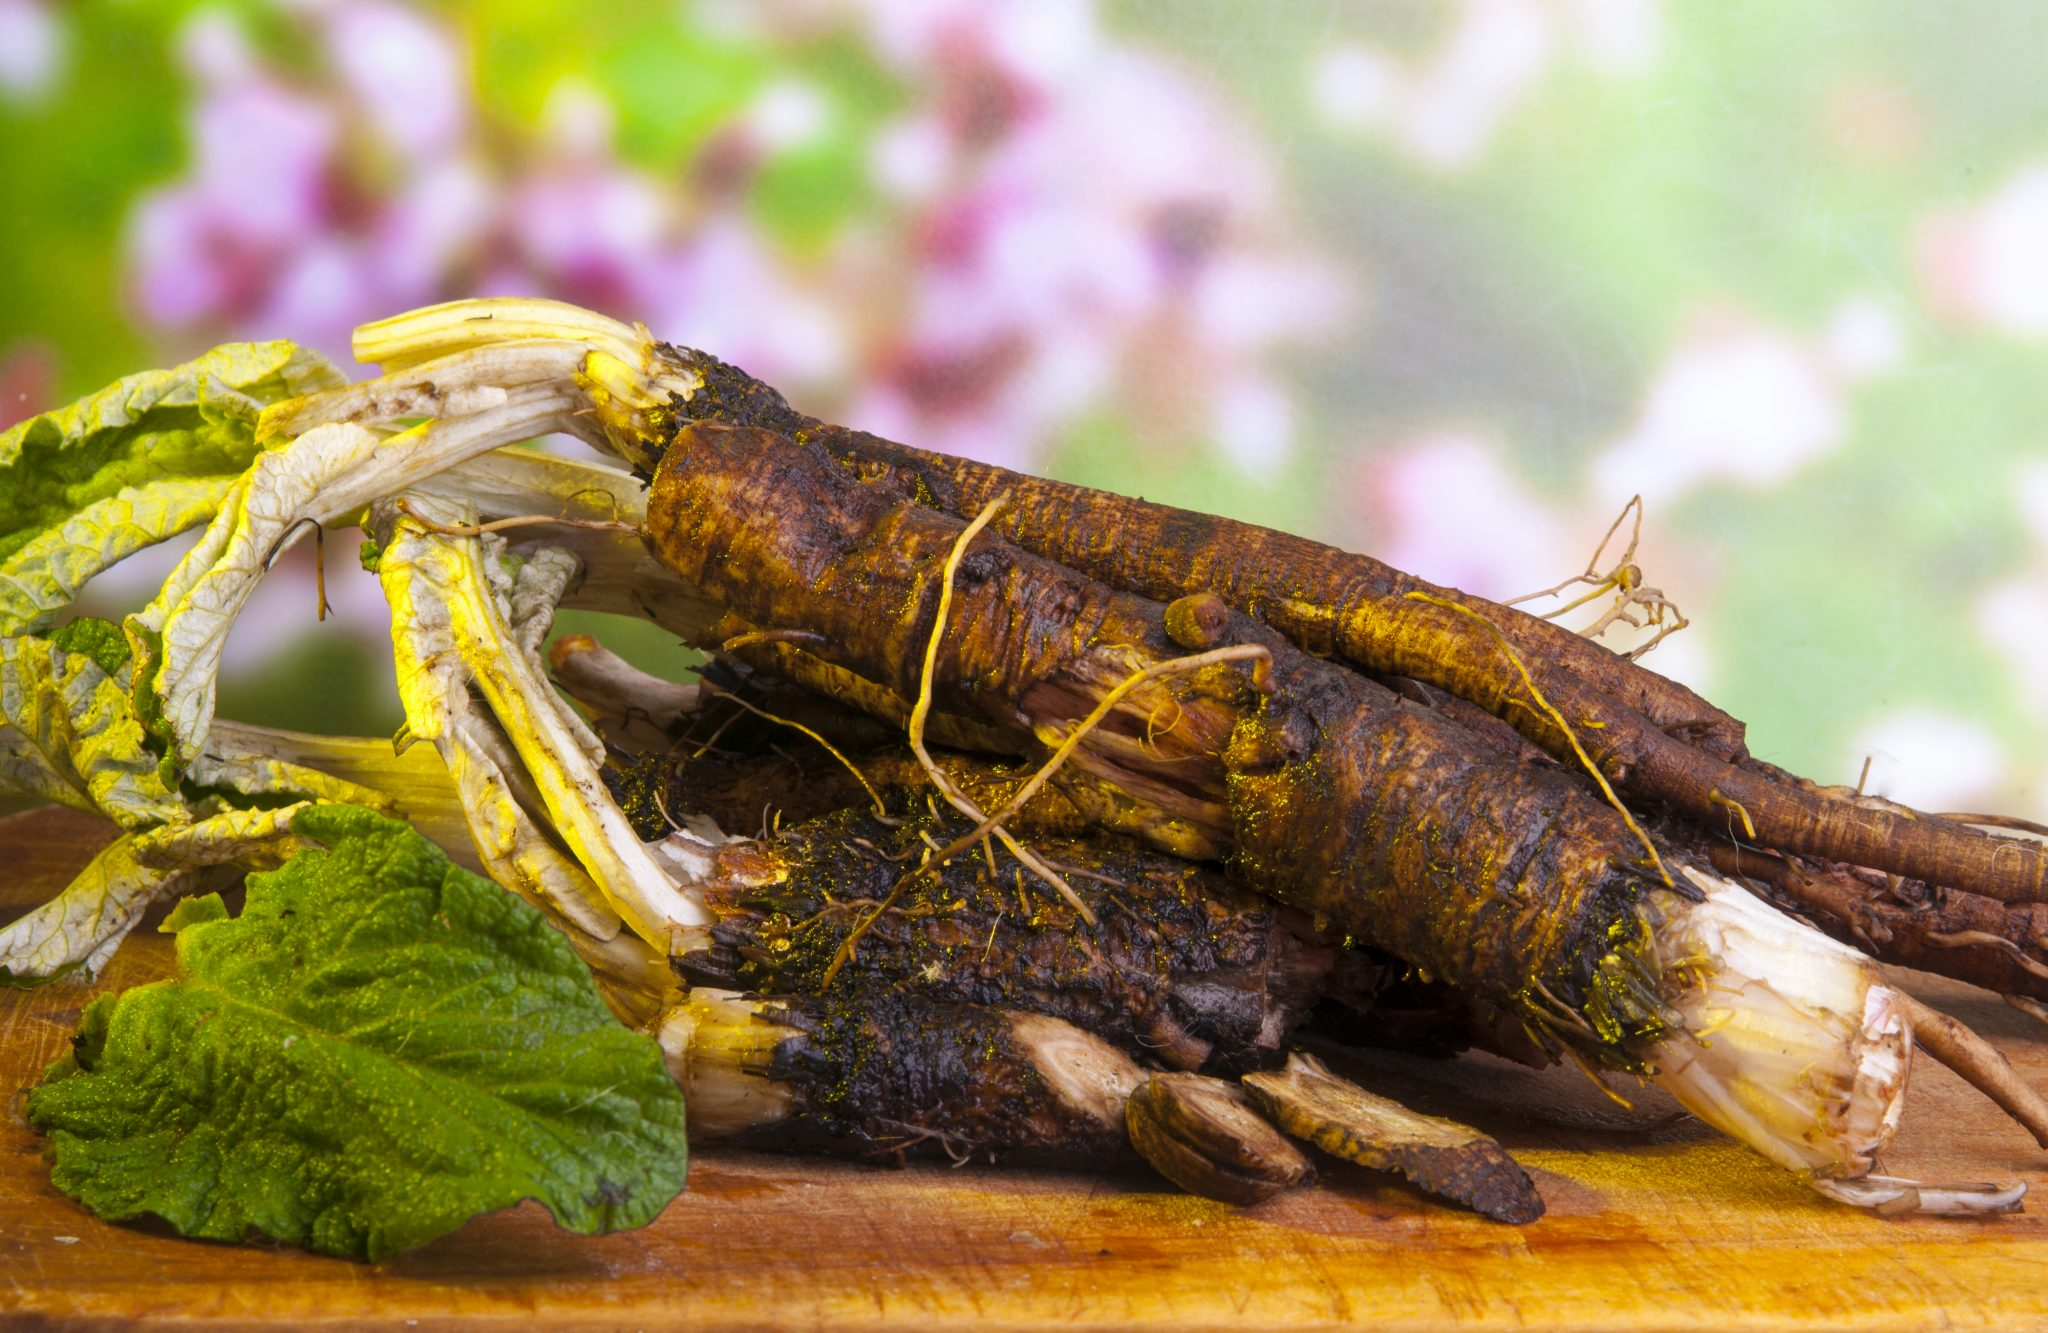 blood cleansing and detoxification herb burdoct root